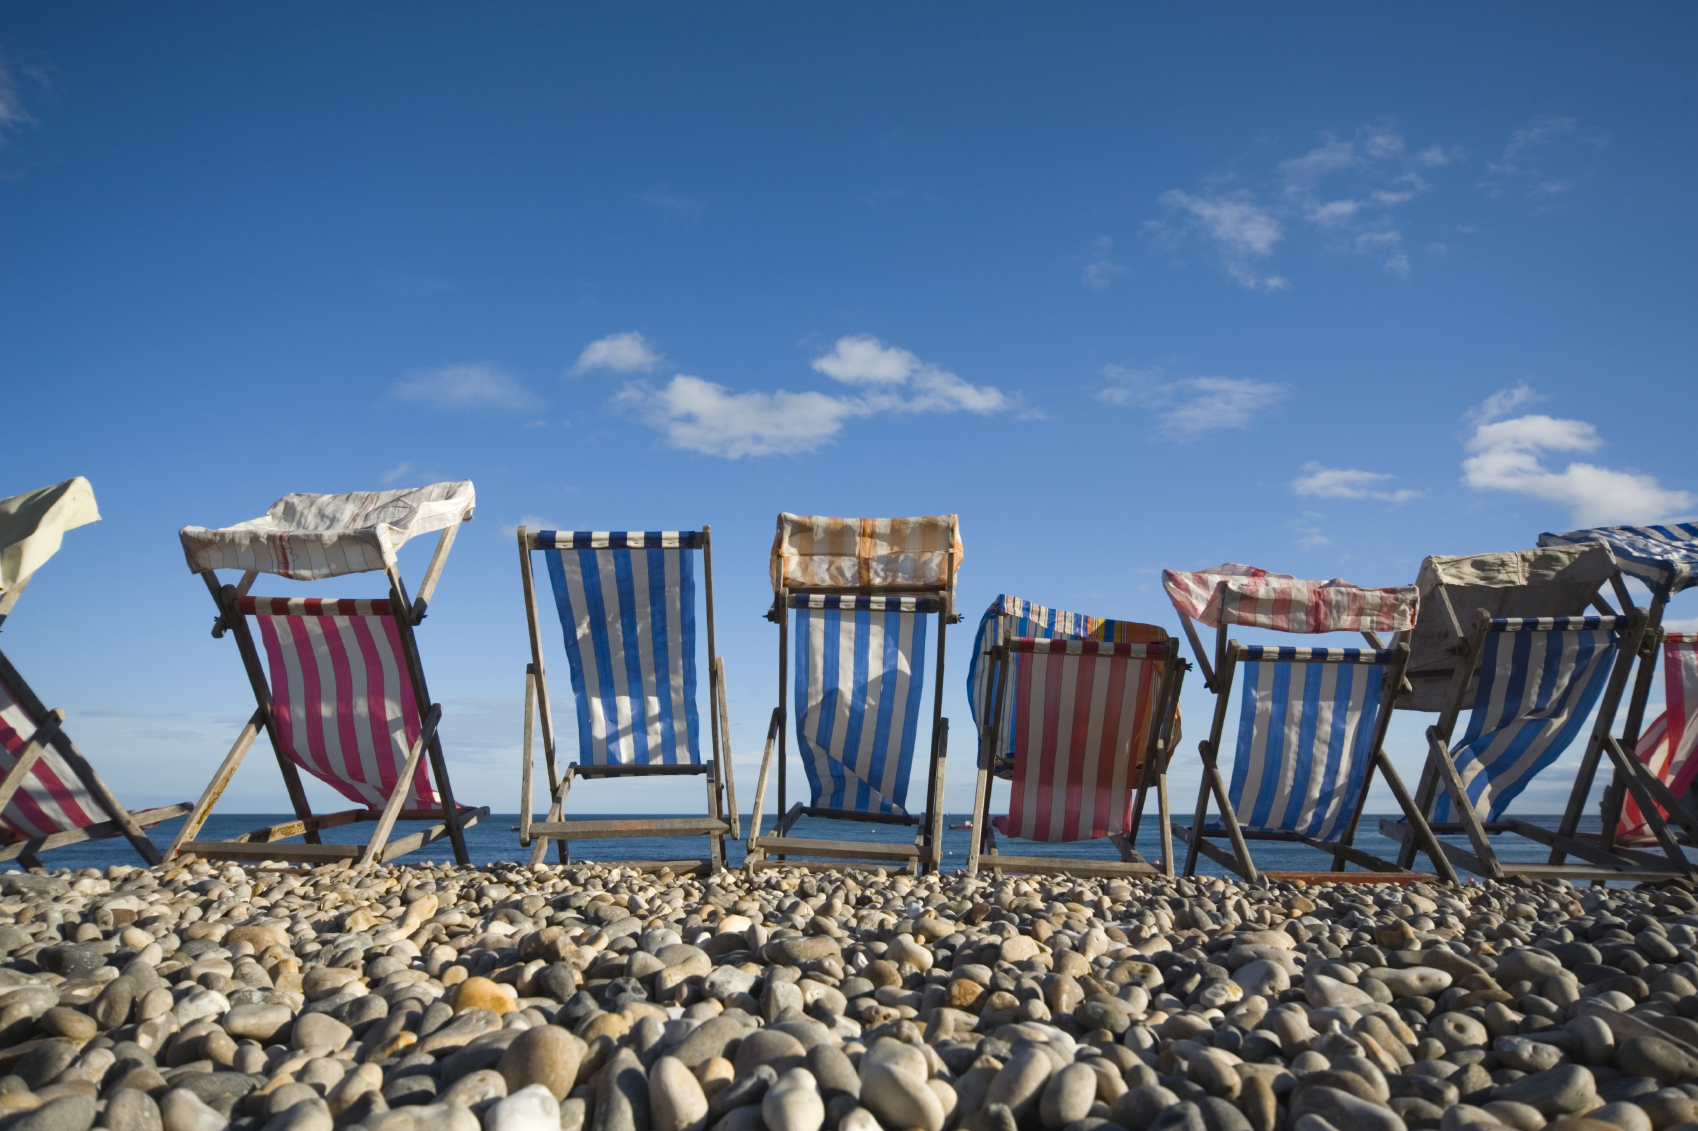 colourful striped deck chairs on a pebbled beach